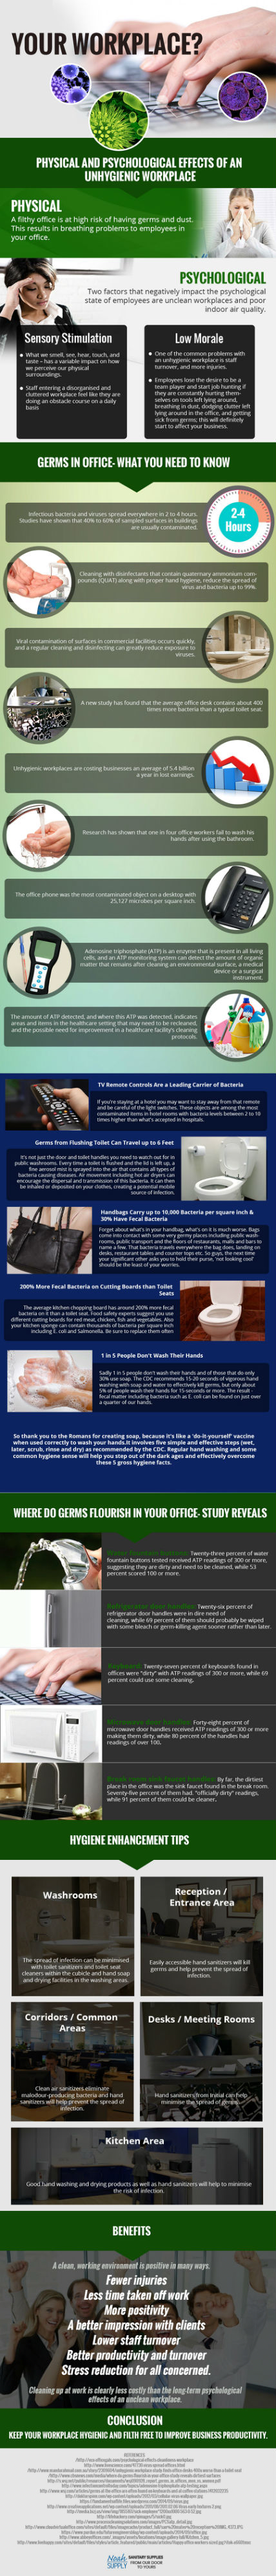 Psychological and Physical Problems with Unhygienic Workplace [Infographic]